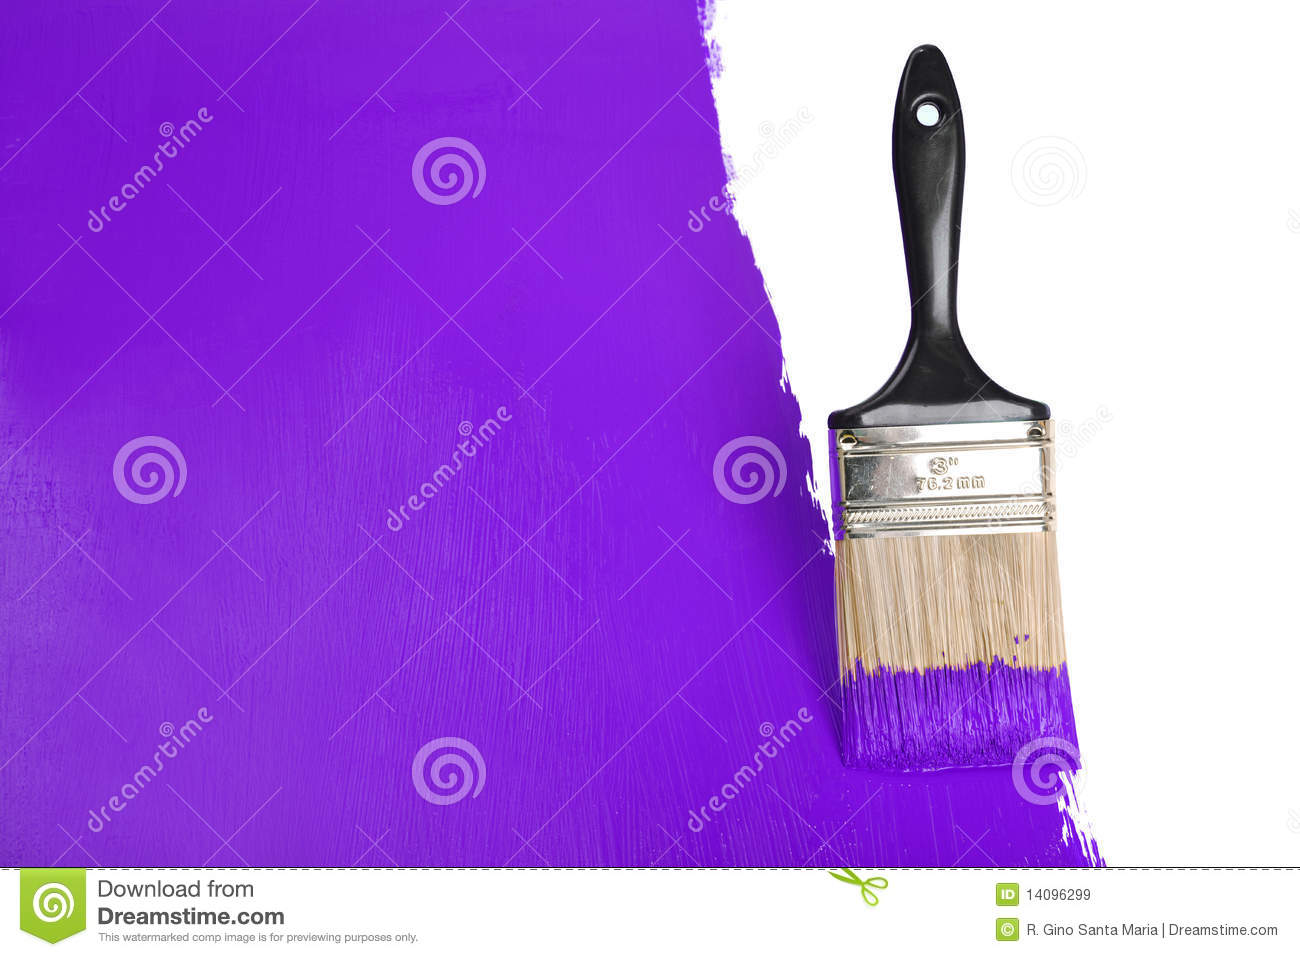 Brush Painting Wall With Purple Paint Royalty Free Stock